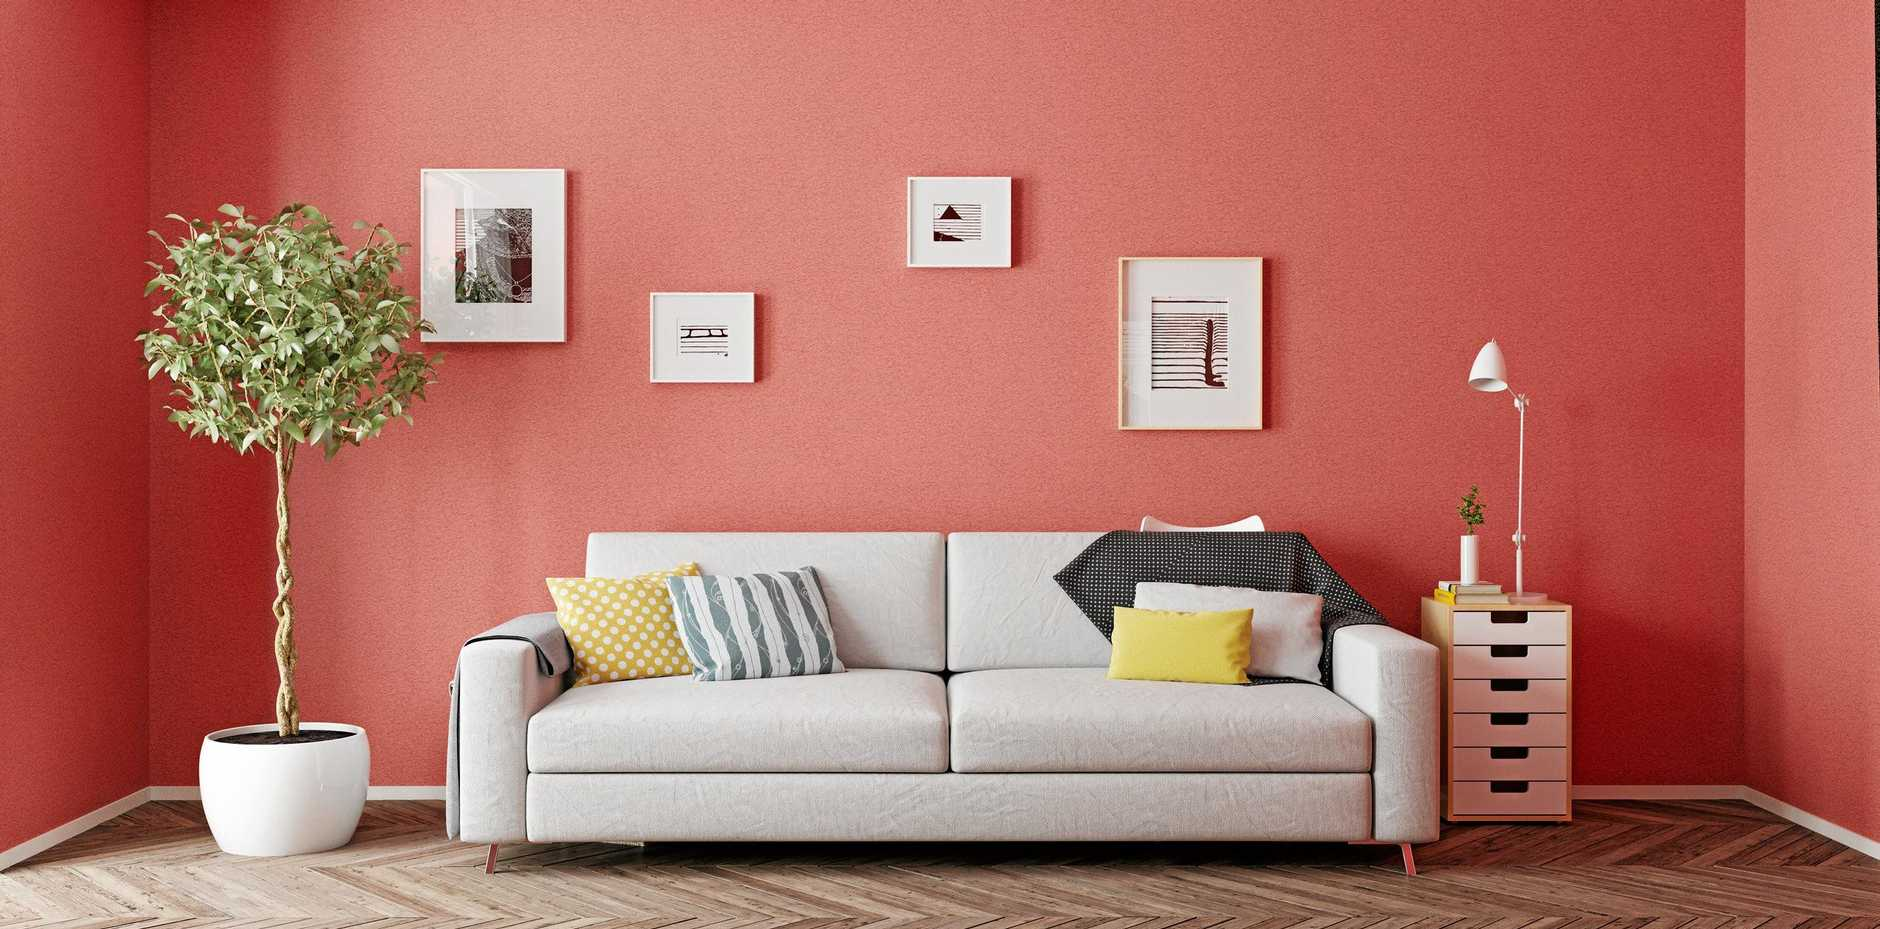 Pantone's Color of the Year for 2019 has been described as an animating and life-affirming coral hue.